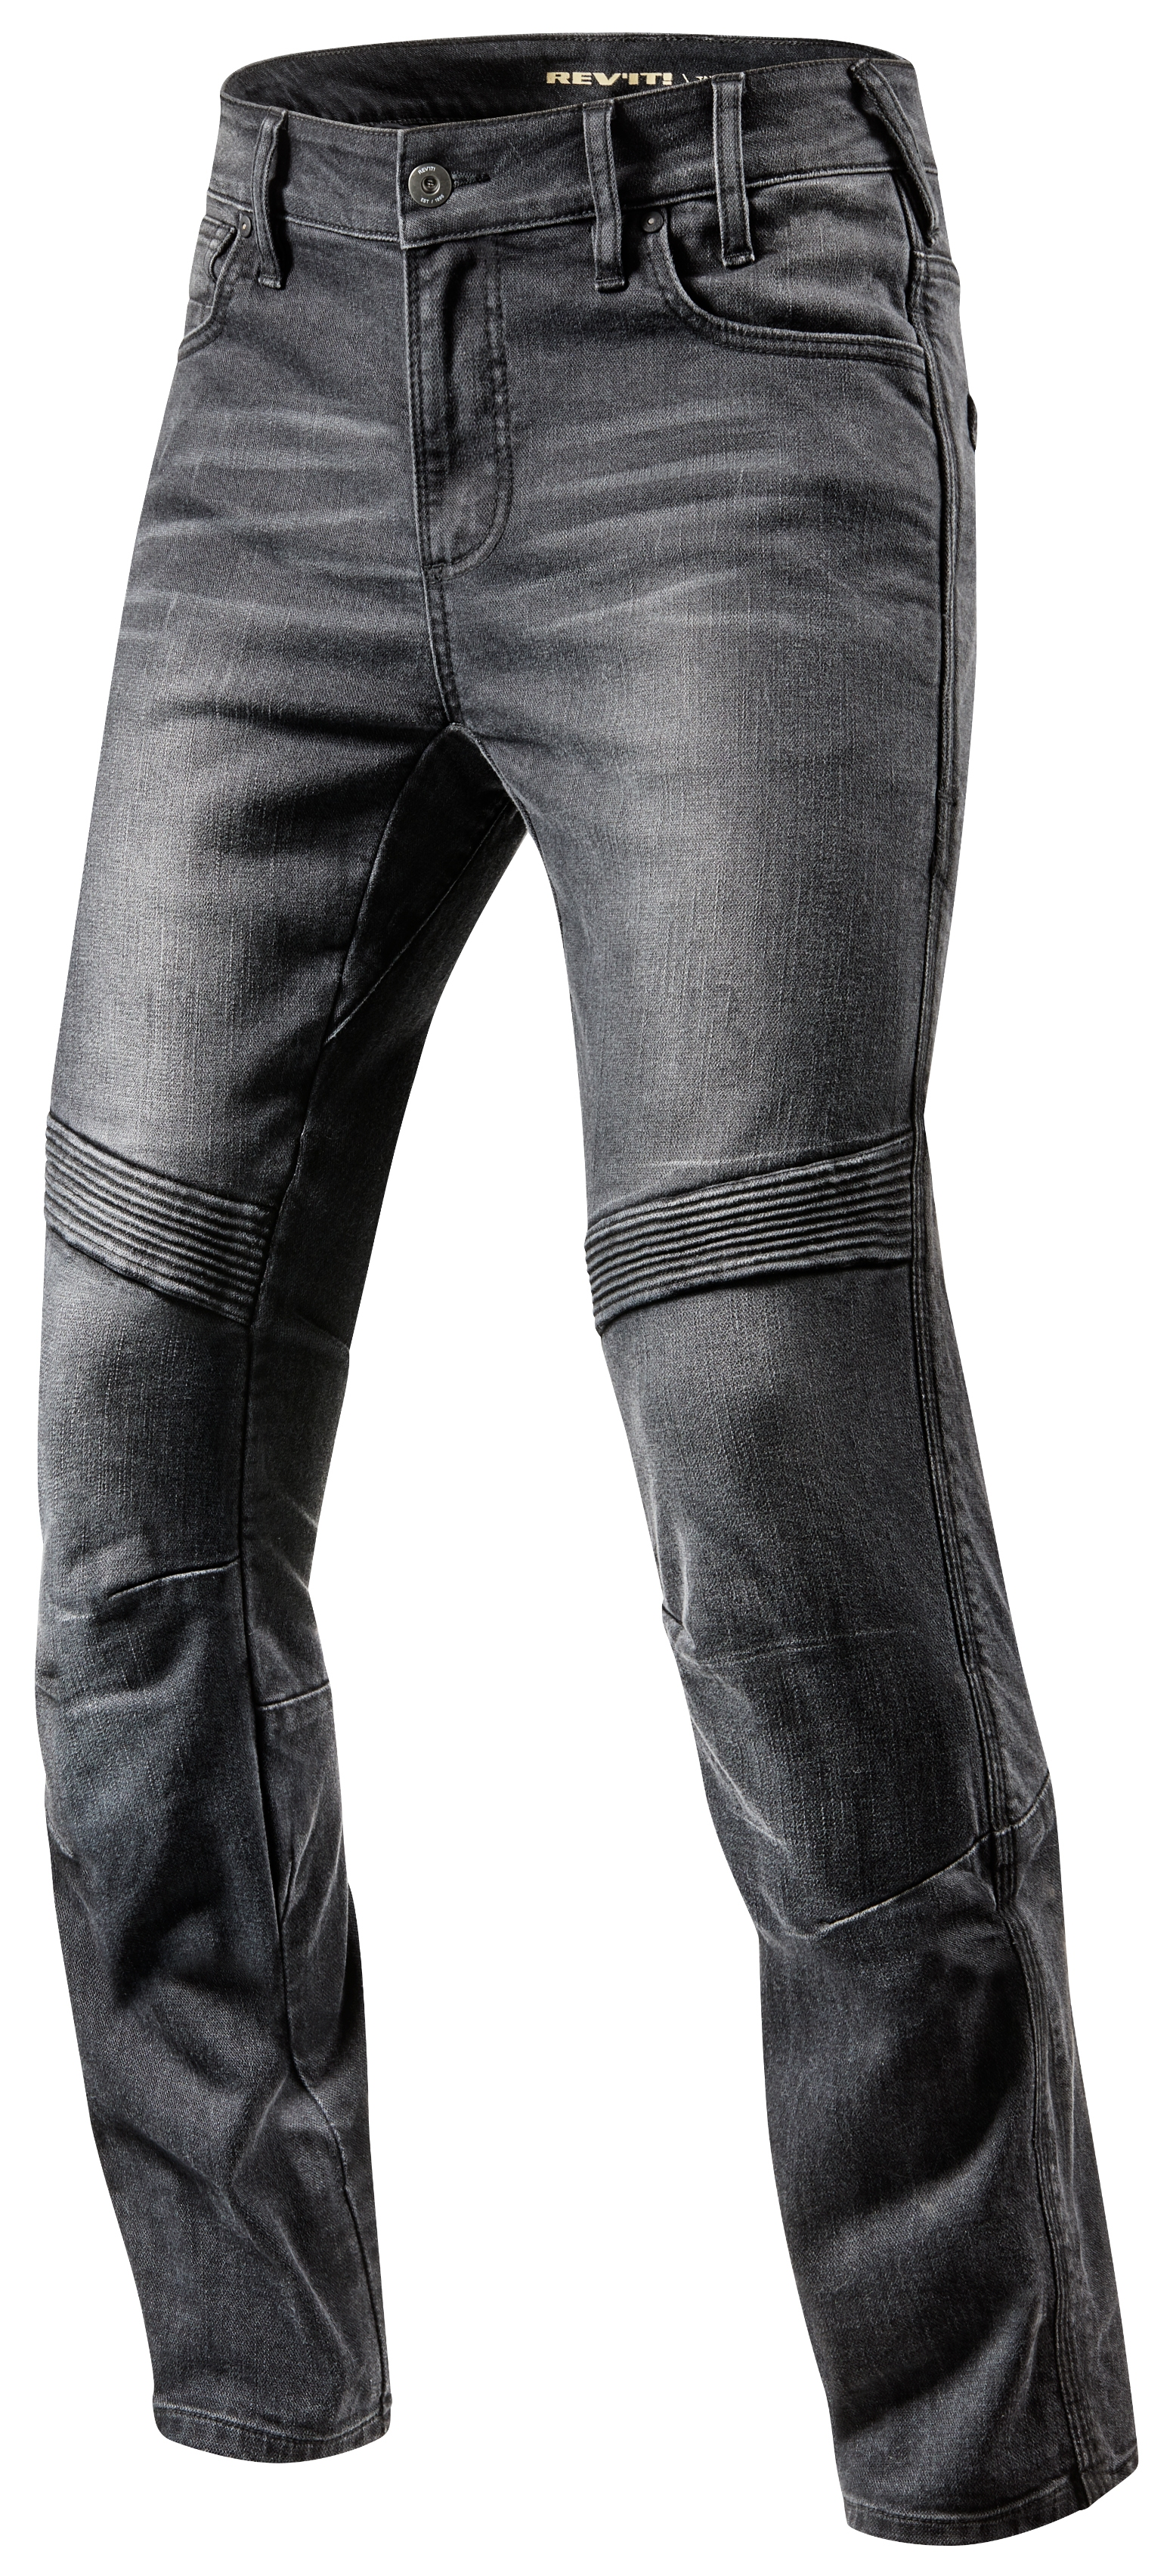 reputable site 6d6be 3887d REV'IT! Moto Jeans